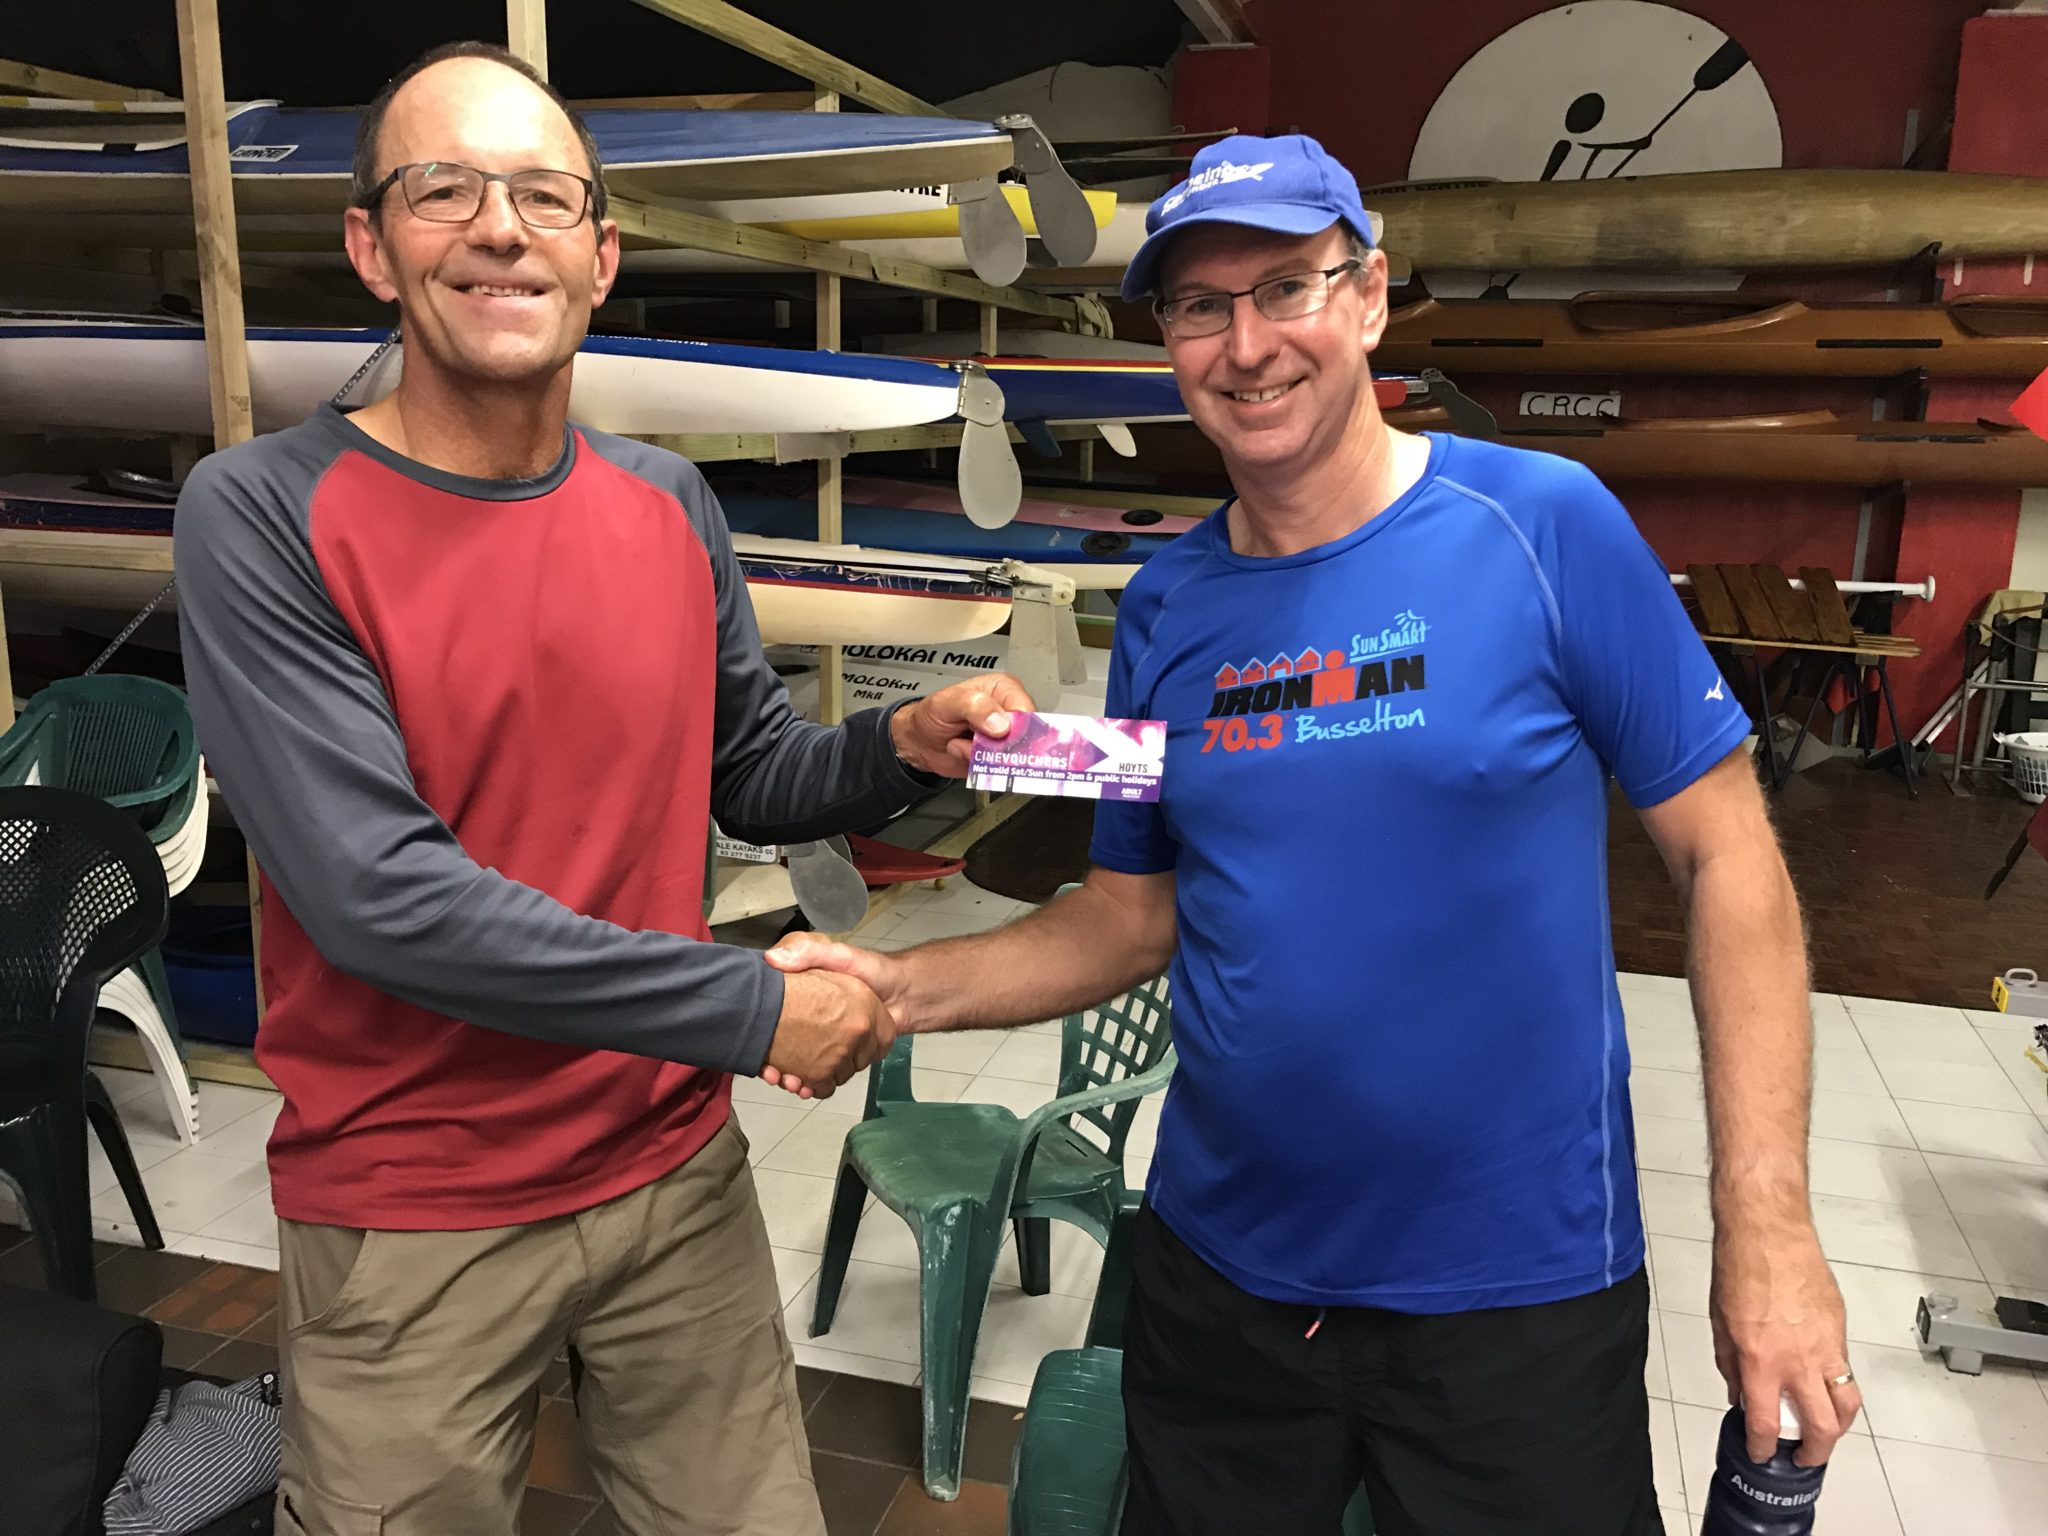 Tues 5th December 2017 : Tonights photo shows Doug Hodson presenting David Urquhart with a movie voucher.